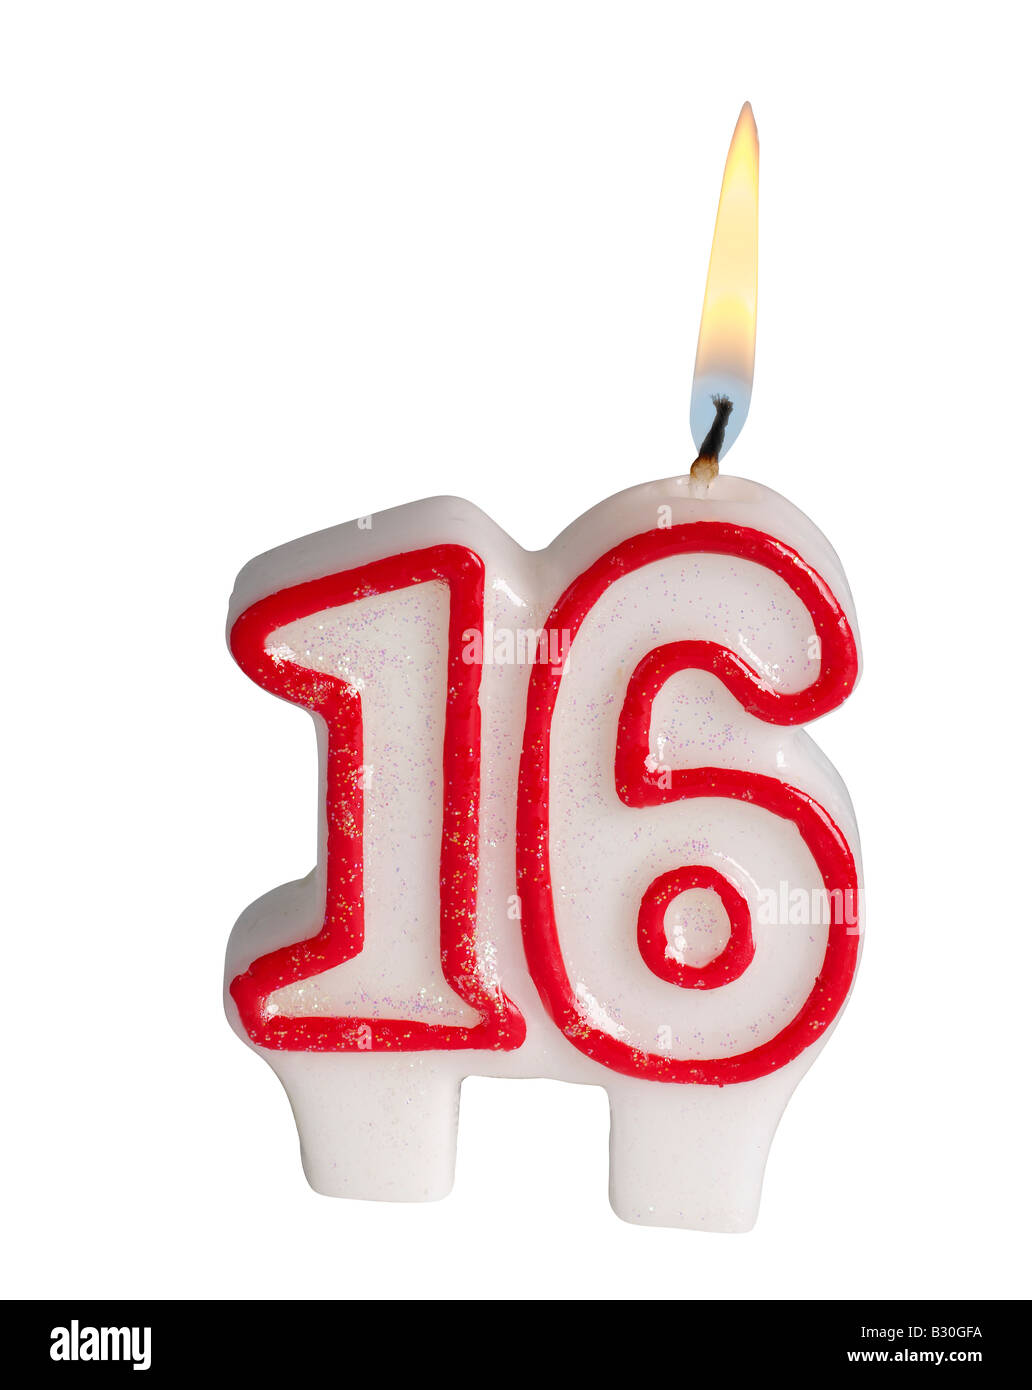 Number 16 candle - Stock Image